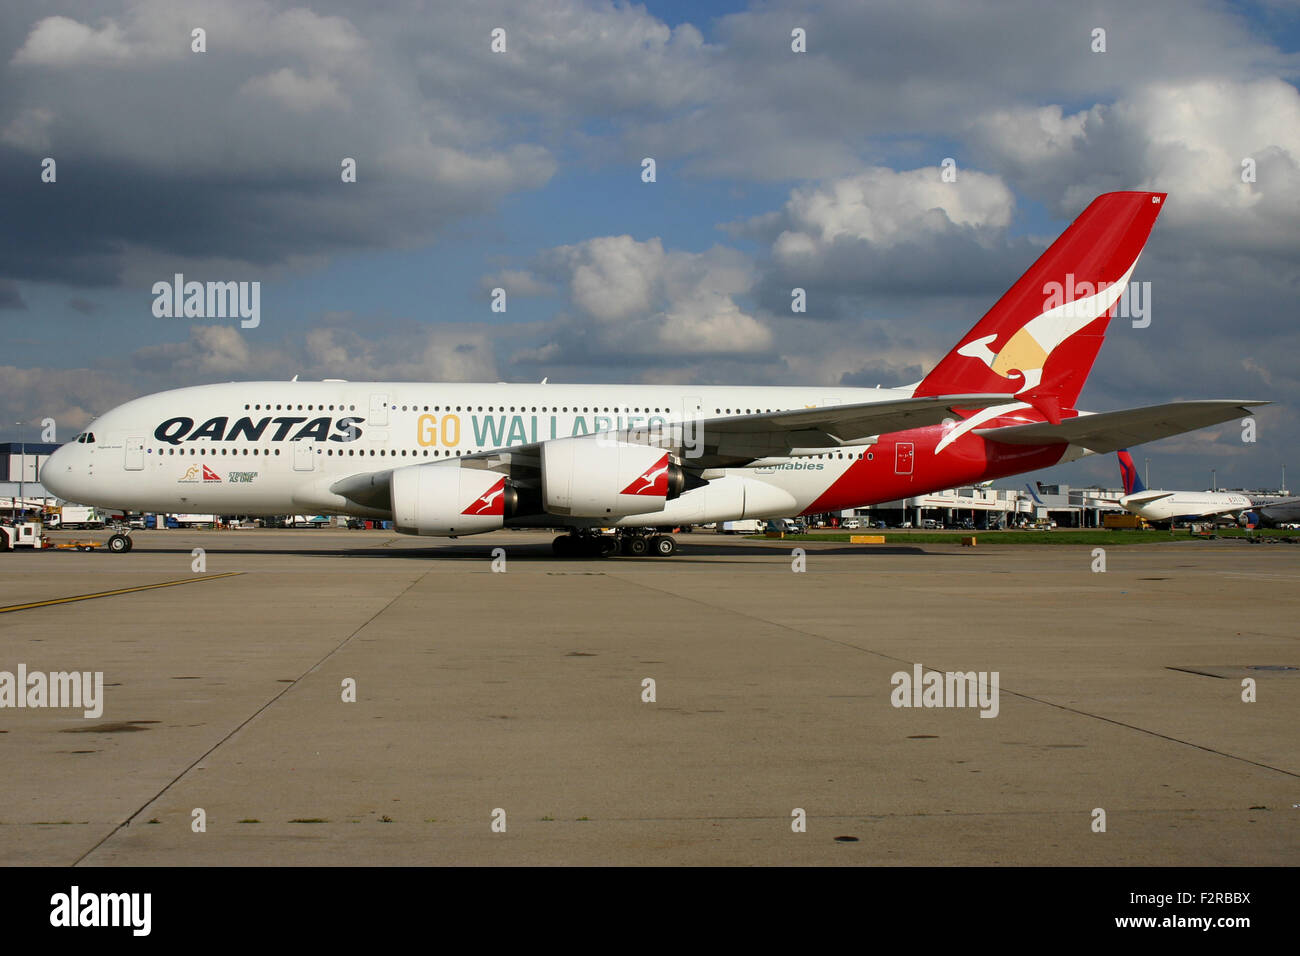 Qantas A380 Wallabies Go Rugby World Cup Stock Photo Alamy